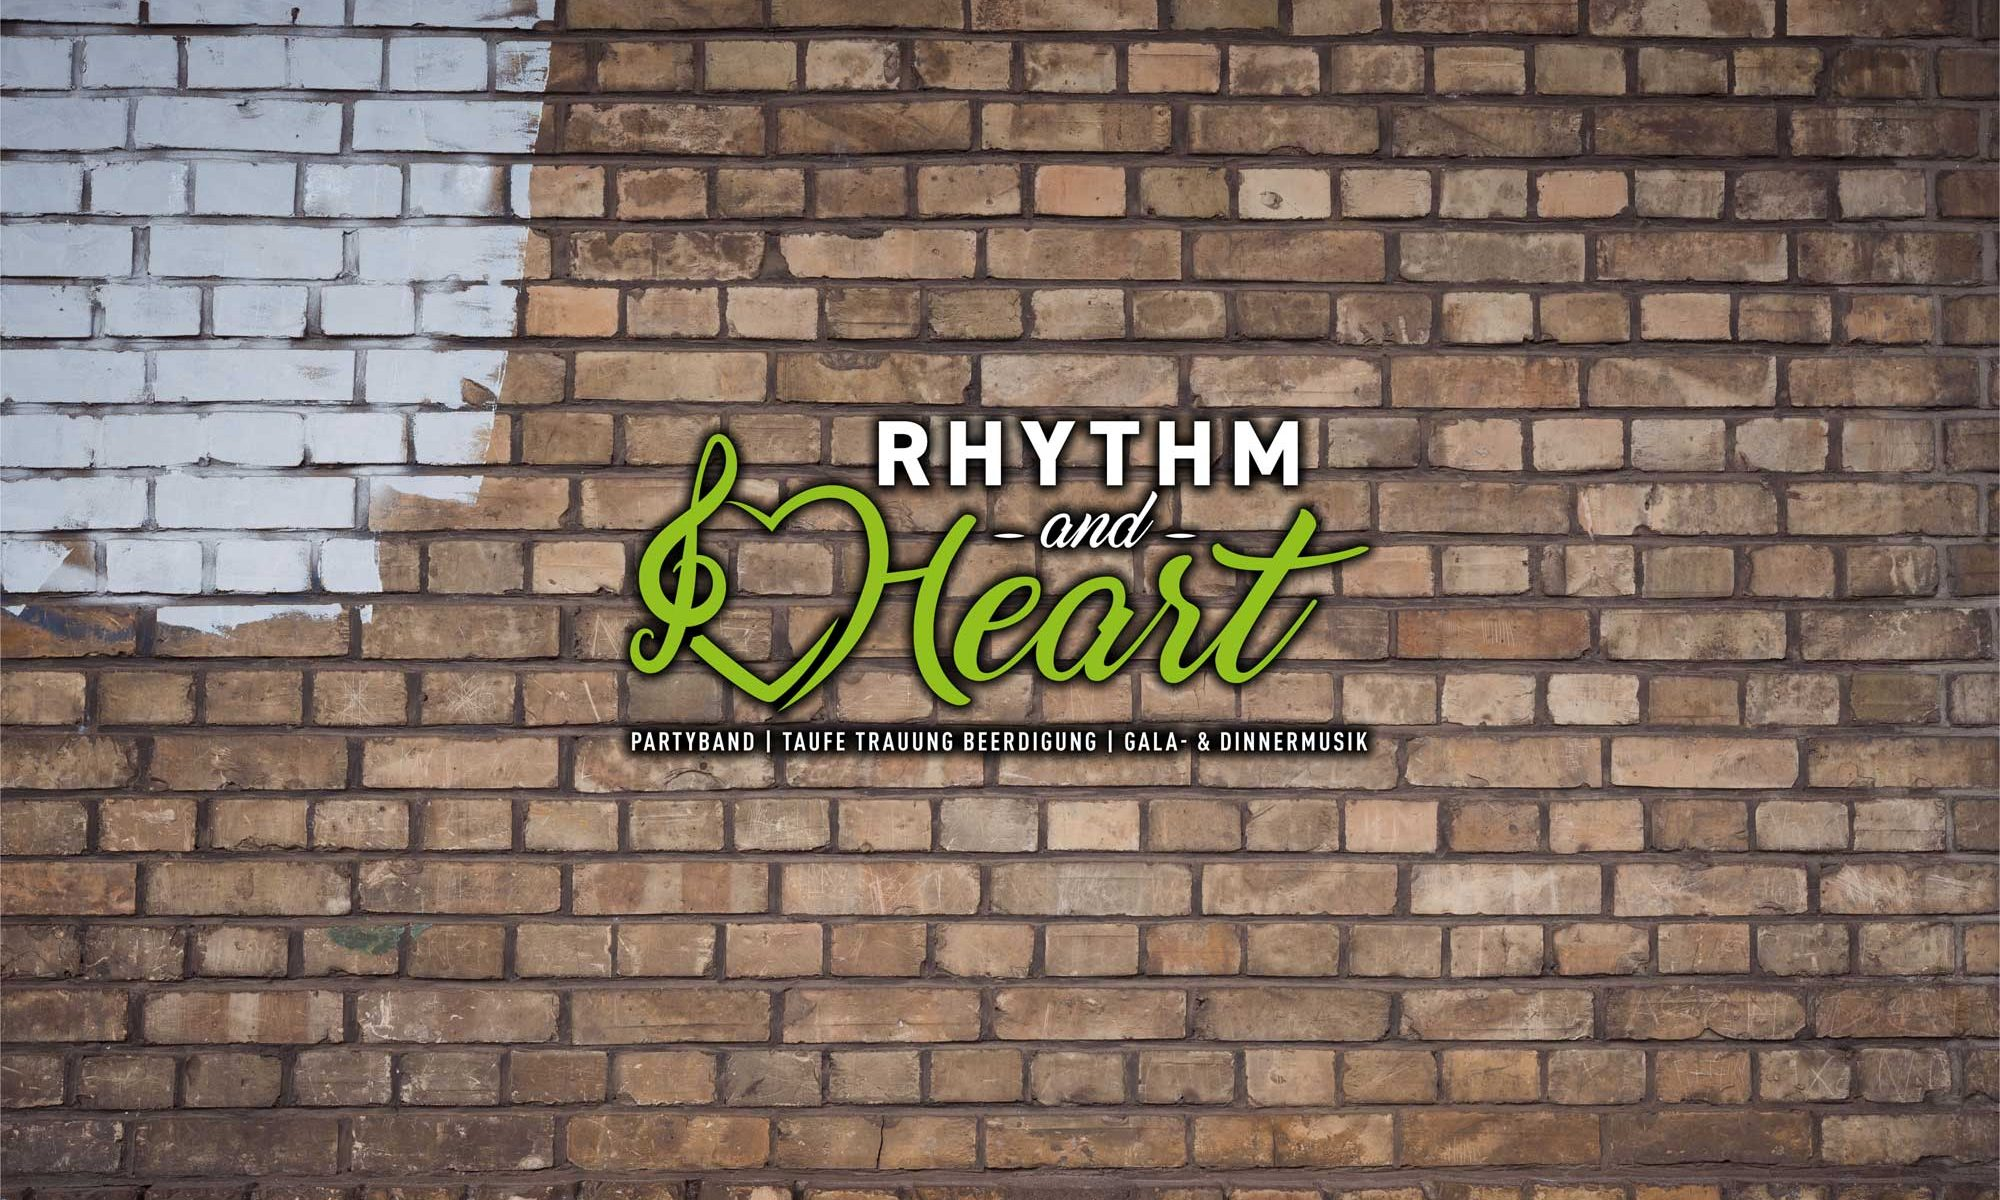 Rhythm and Heart